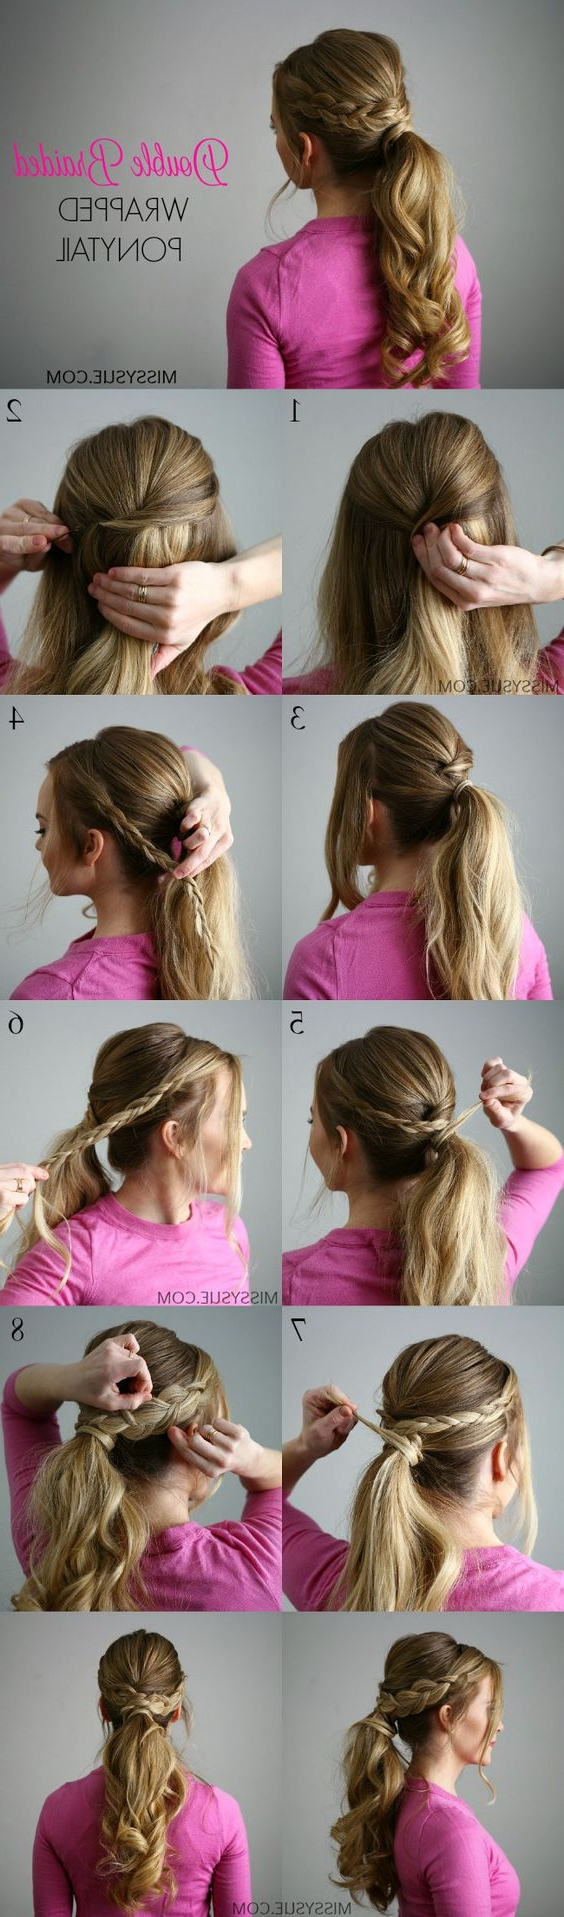 Recent Braided And Wrapped Hairstyles For 21 Tutorials For Styling Wrap Around Braids – Pretty Designs (View 16 of 20)